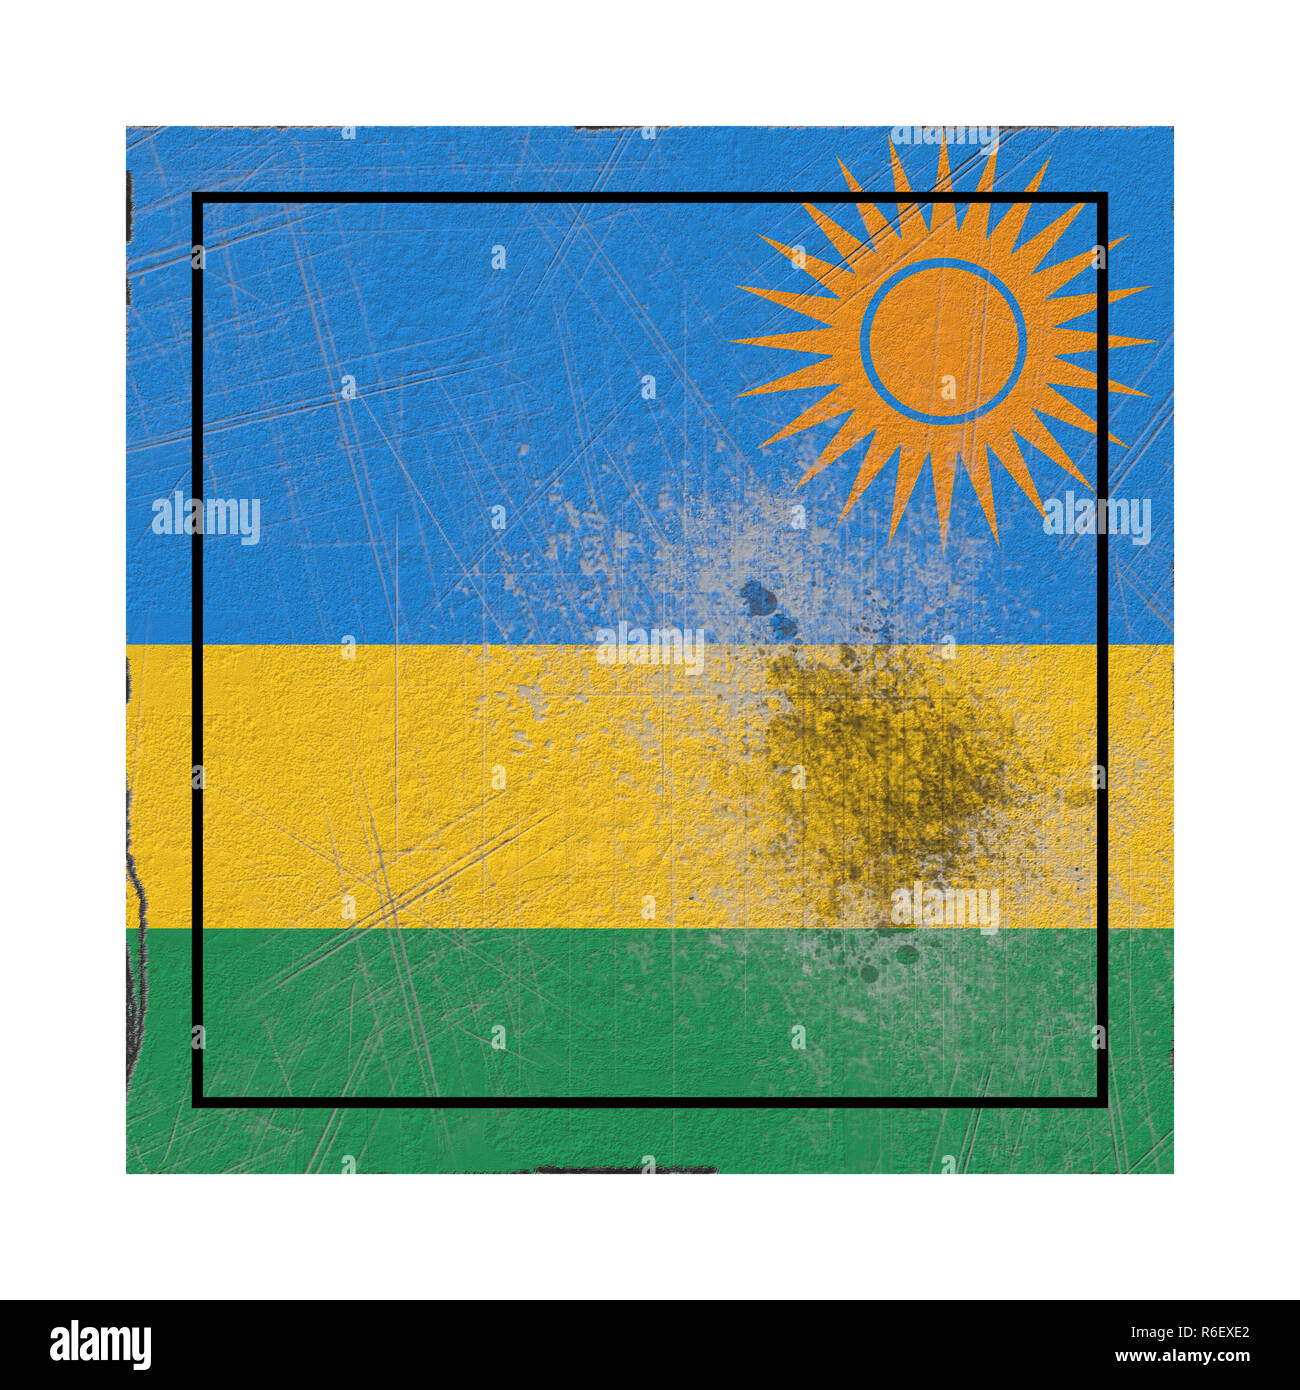 3d rendering of an old Rwanda flag in a concrete square - Stock Image